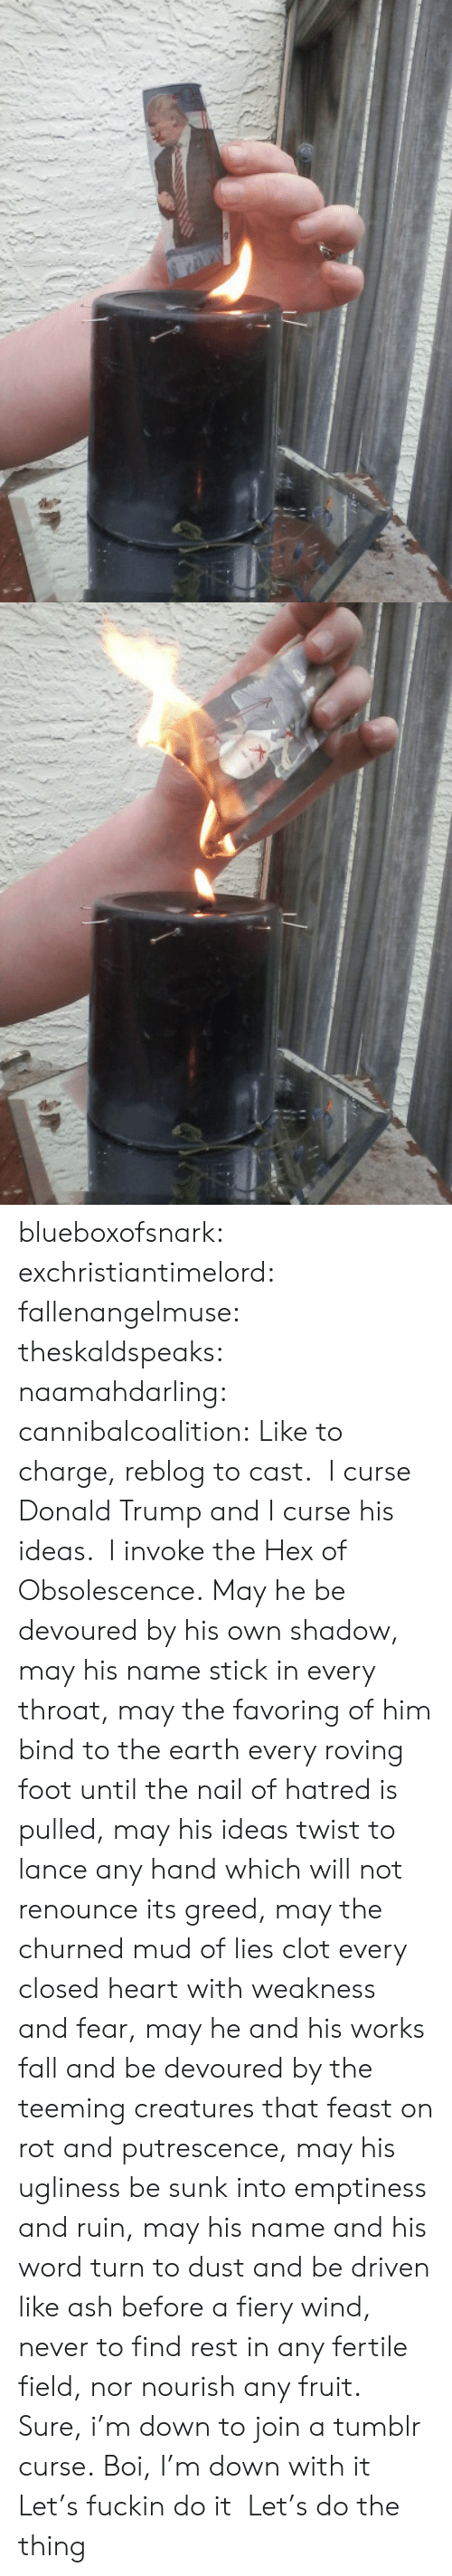 Ash, Donald Trump, and Fall: blueboxofsnark:  exchristiantimelord:  fallenangelmuse:  theskaldspeaks:  naamahdarling:  cannibalcoalition: Like to charge, reblog to cast. I curse Donald Trump and I curse his ideas. I invoke the Hex of Obsolescence.    May he be devoured by his own shadow, may his name stick in every throat, may the favoring of him bind to the earth every roving foot until the nail of hatred is pulled, may his ideas twist to lance any hand which will not renounce its greed, may the churned mud of lies clot every closed heart with weakness and fear, may he and his works fall and be devoured by the teeming creatures that feast on rot and putrescence, may his ugliness be sunk into emptiness and ruin, may his name and his word turn to dust and be driven like ash before a fiery wind, never to find rest in any fertile field, nor nourish any fruit.  Sure, i'm down to join a tumblr curse.  Boi, I'm down with it  Let's fuckin do it  Let's do the thing